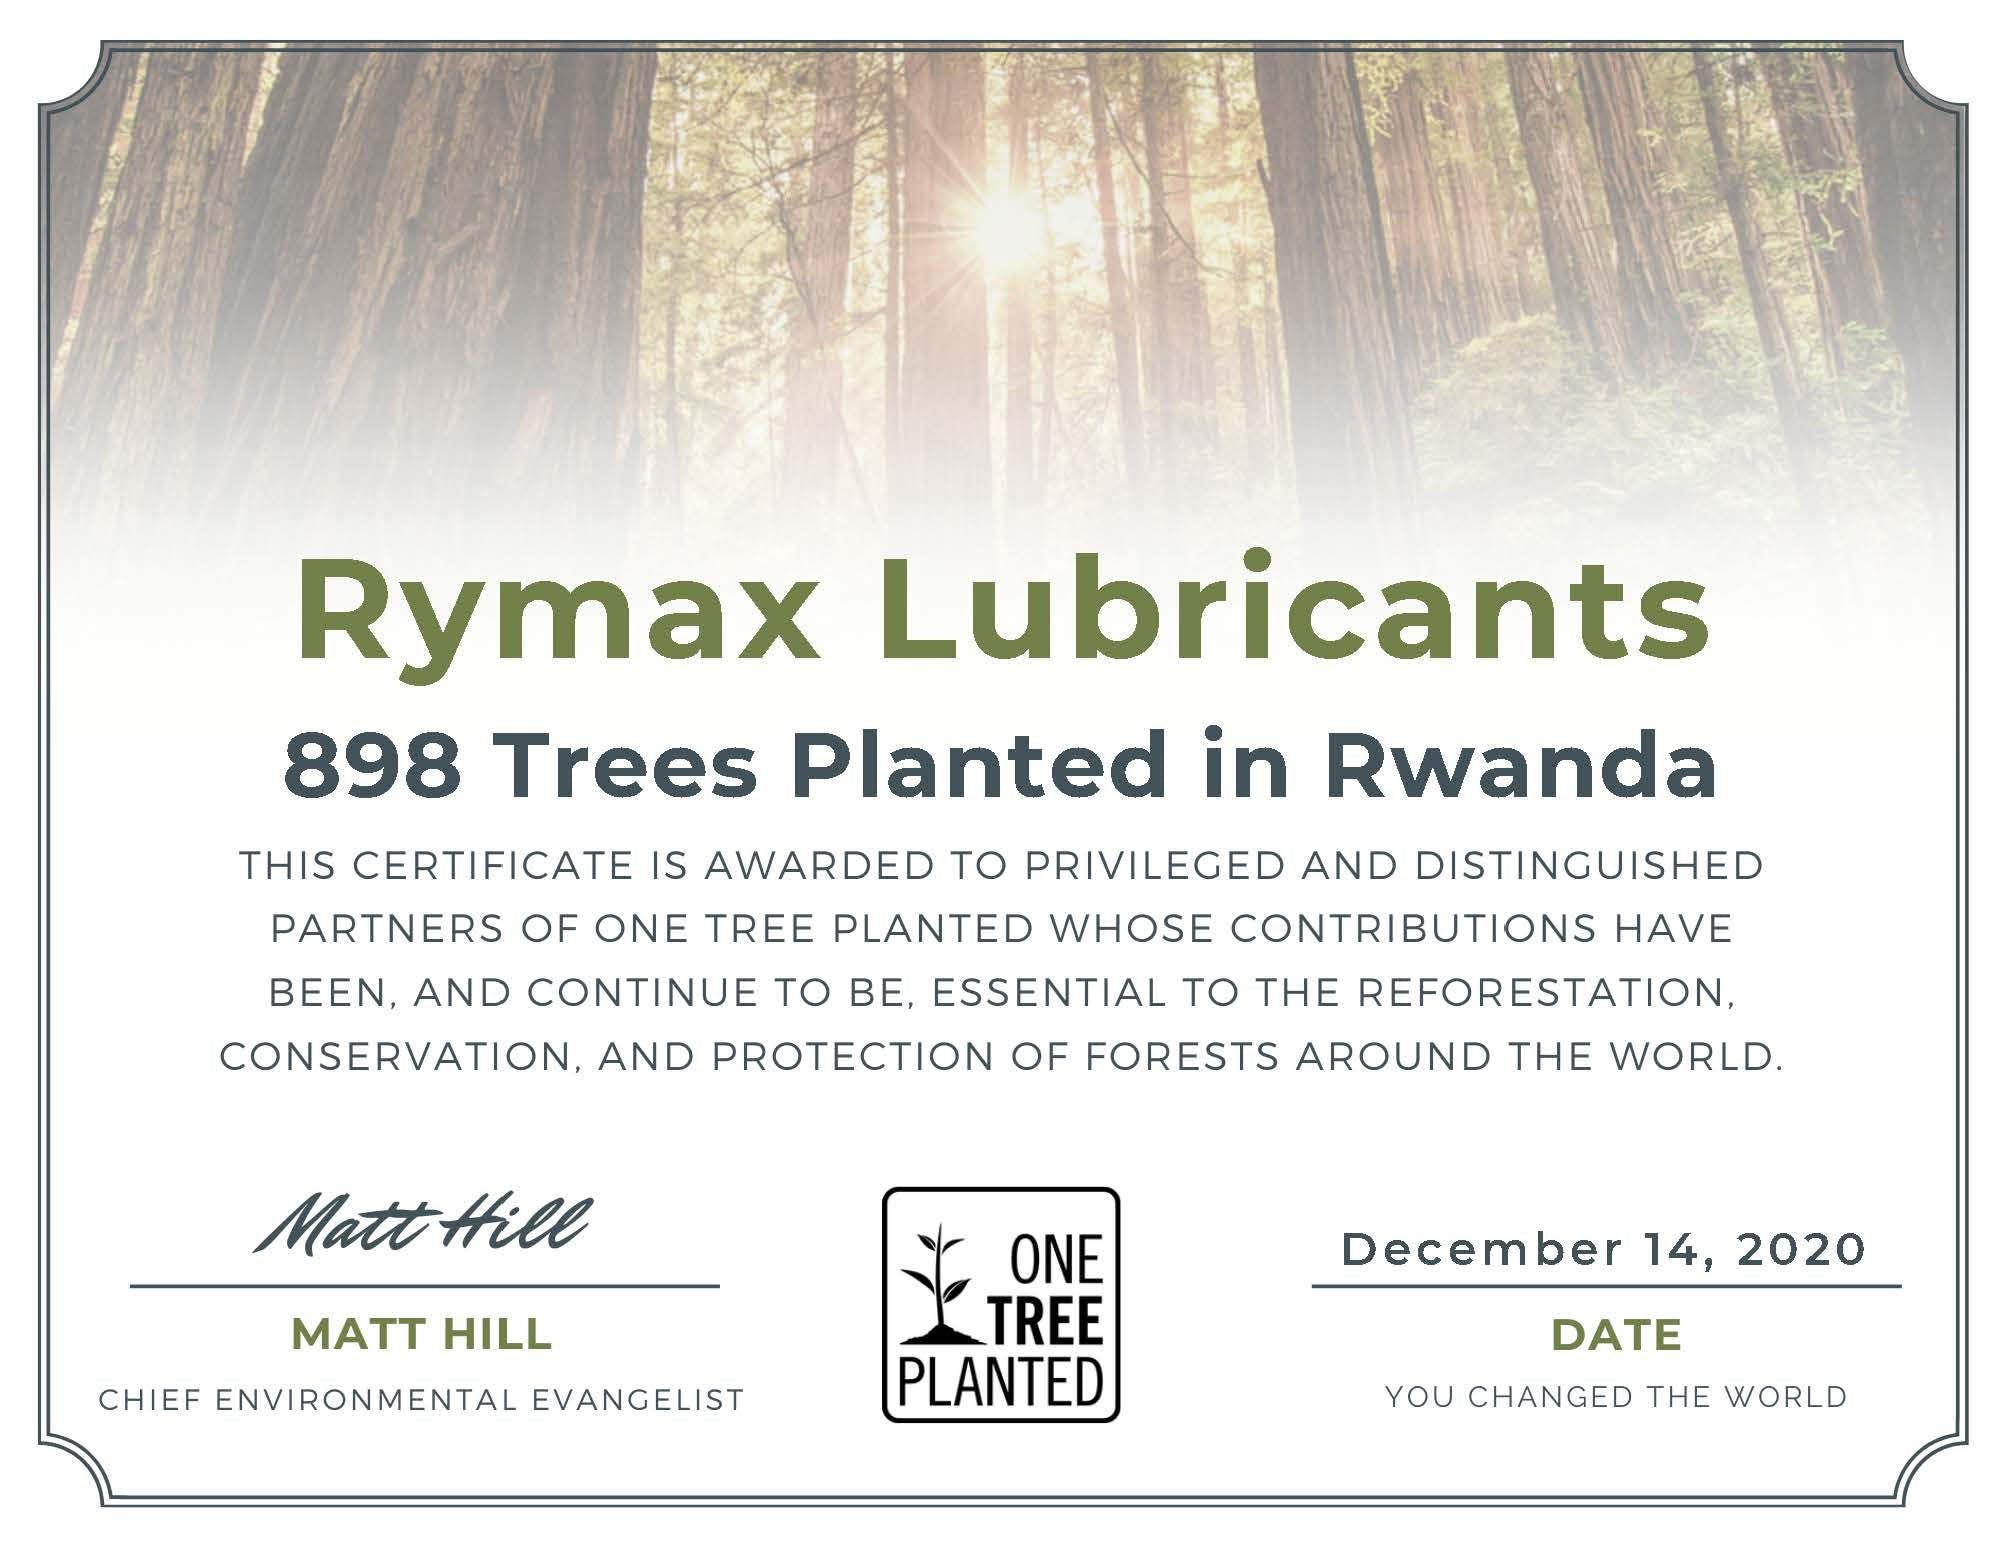 Official certificate One Tree Planted awarded to Rymax Lubricants